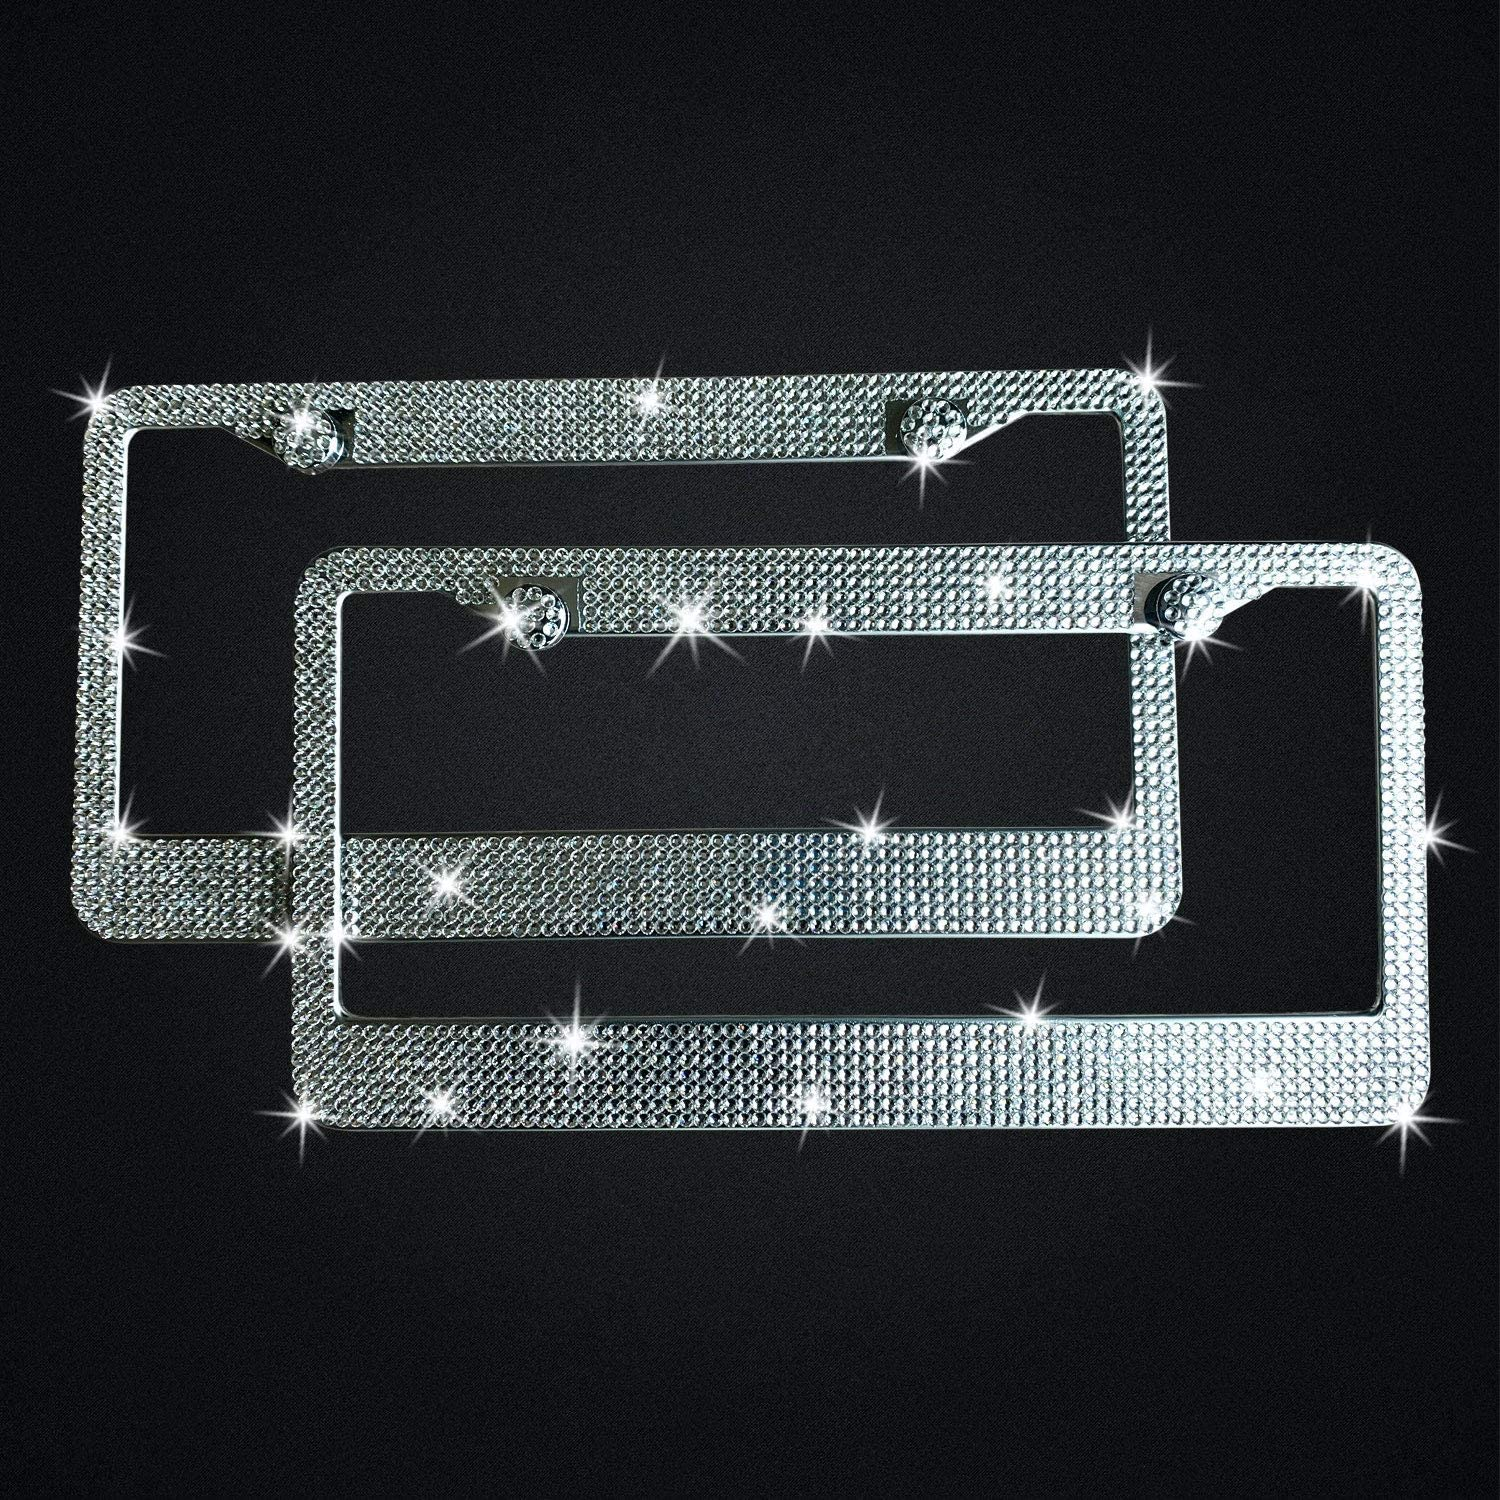 Black Car Bling Bedazzled License Plate Frames 2Pack Handcrafted Luxury Rhinestone Cute Cover for Women Men Premium Gift Box Glass Diamond Tag Anti-Theft Cap